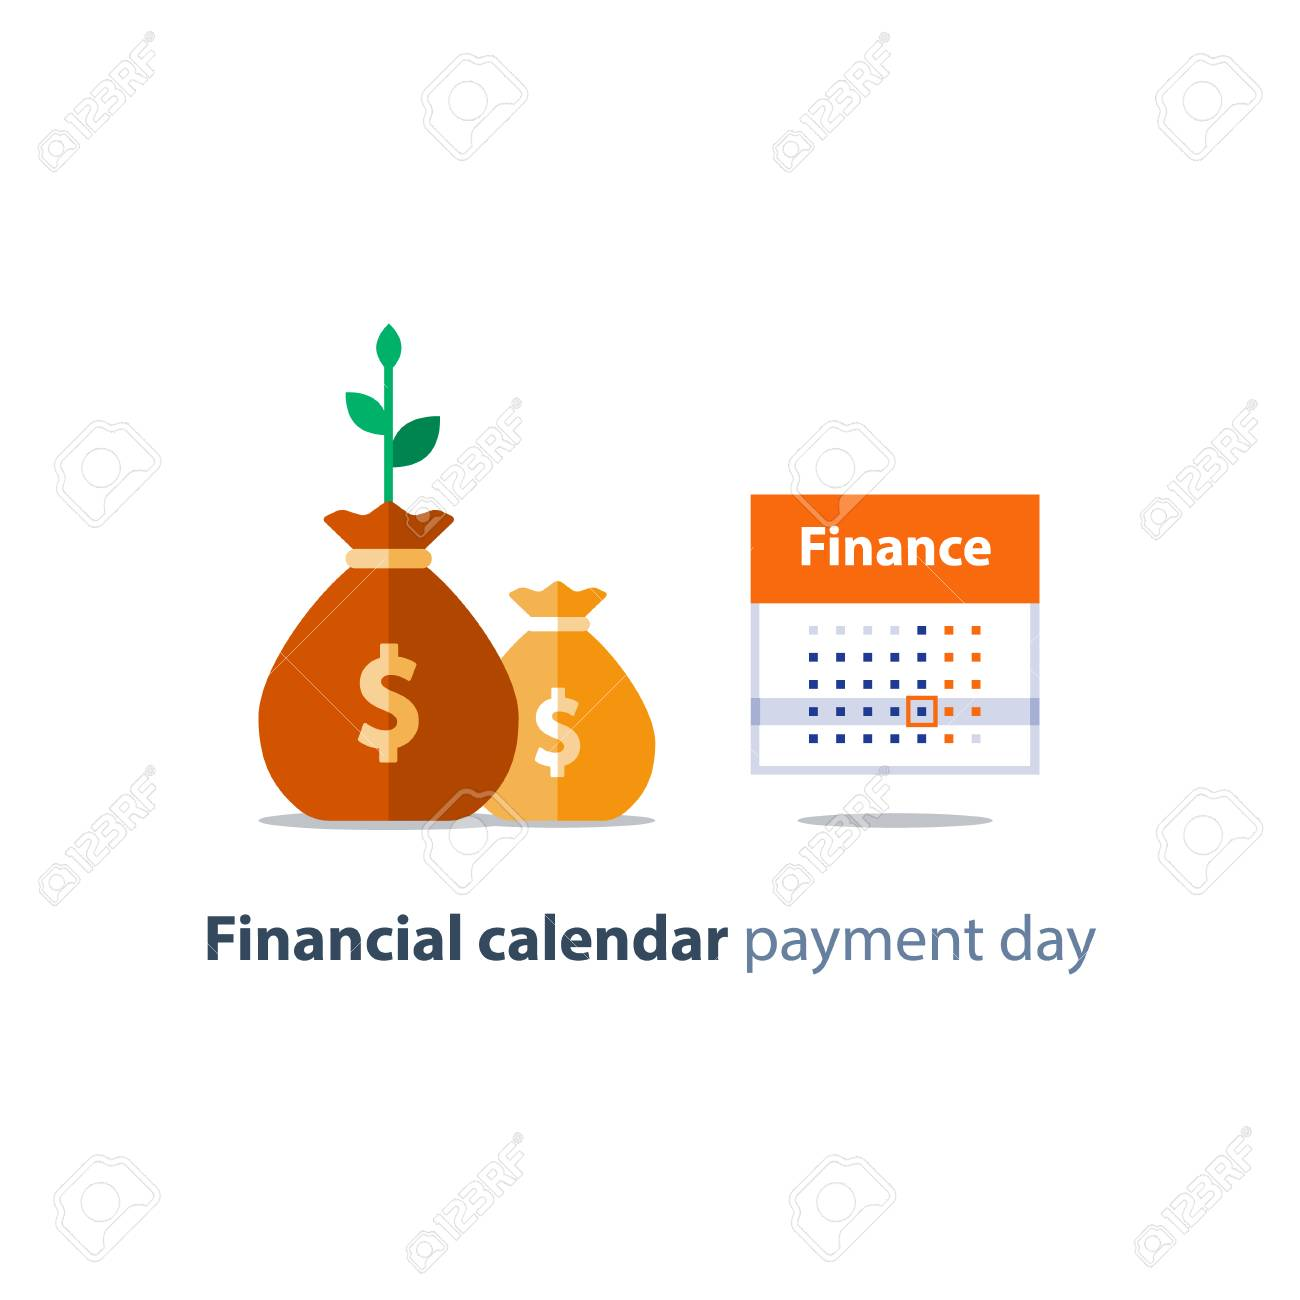 financial calendar illustration budget plan payment bay finance